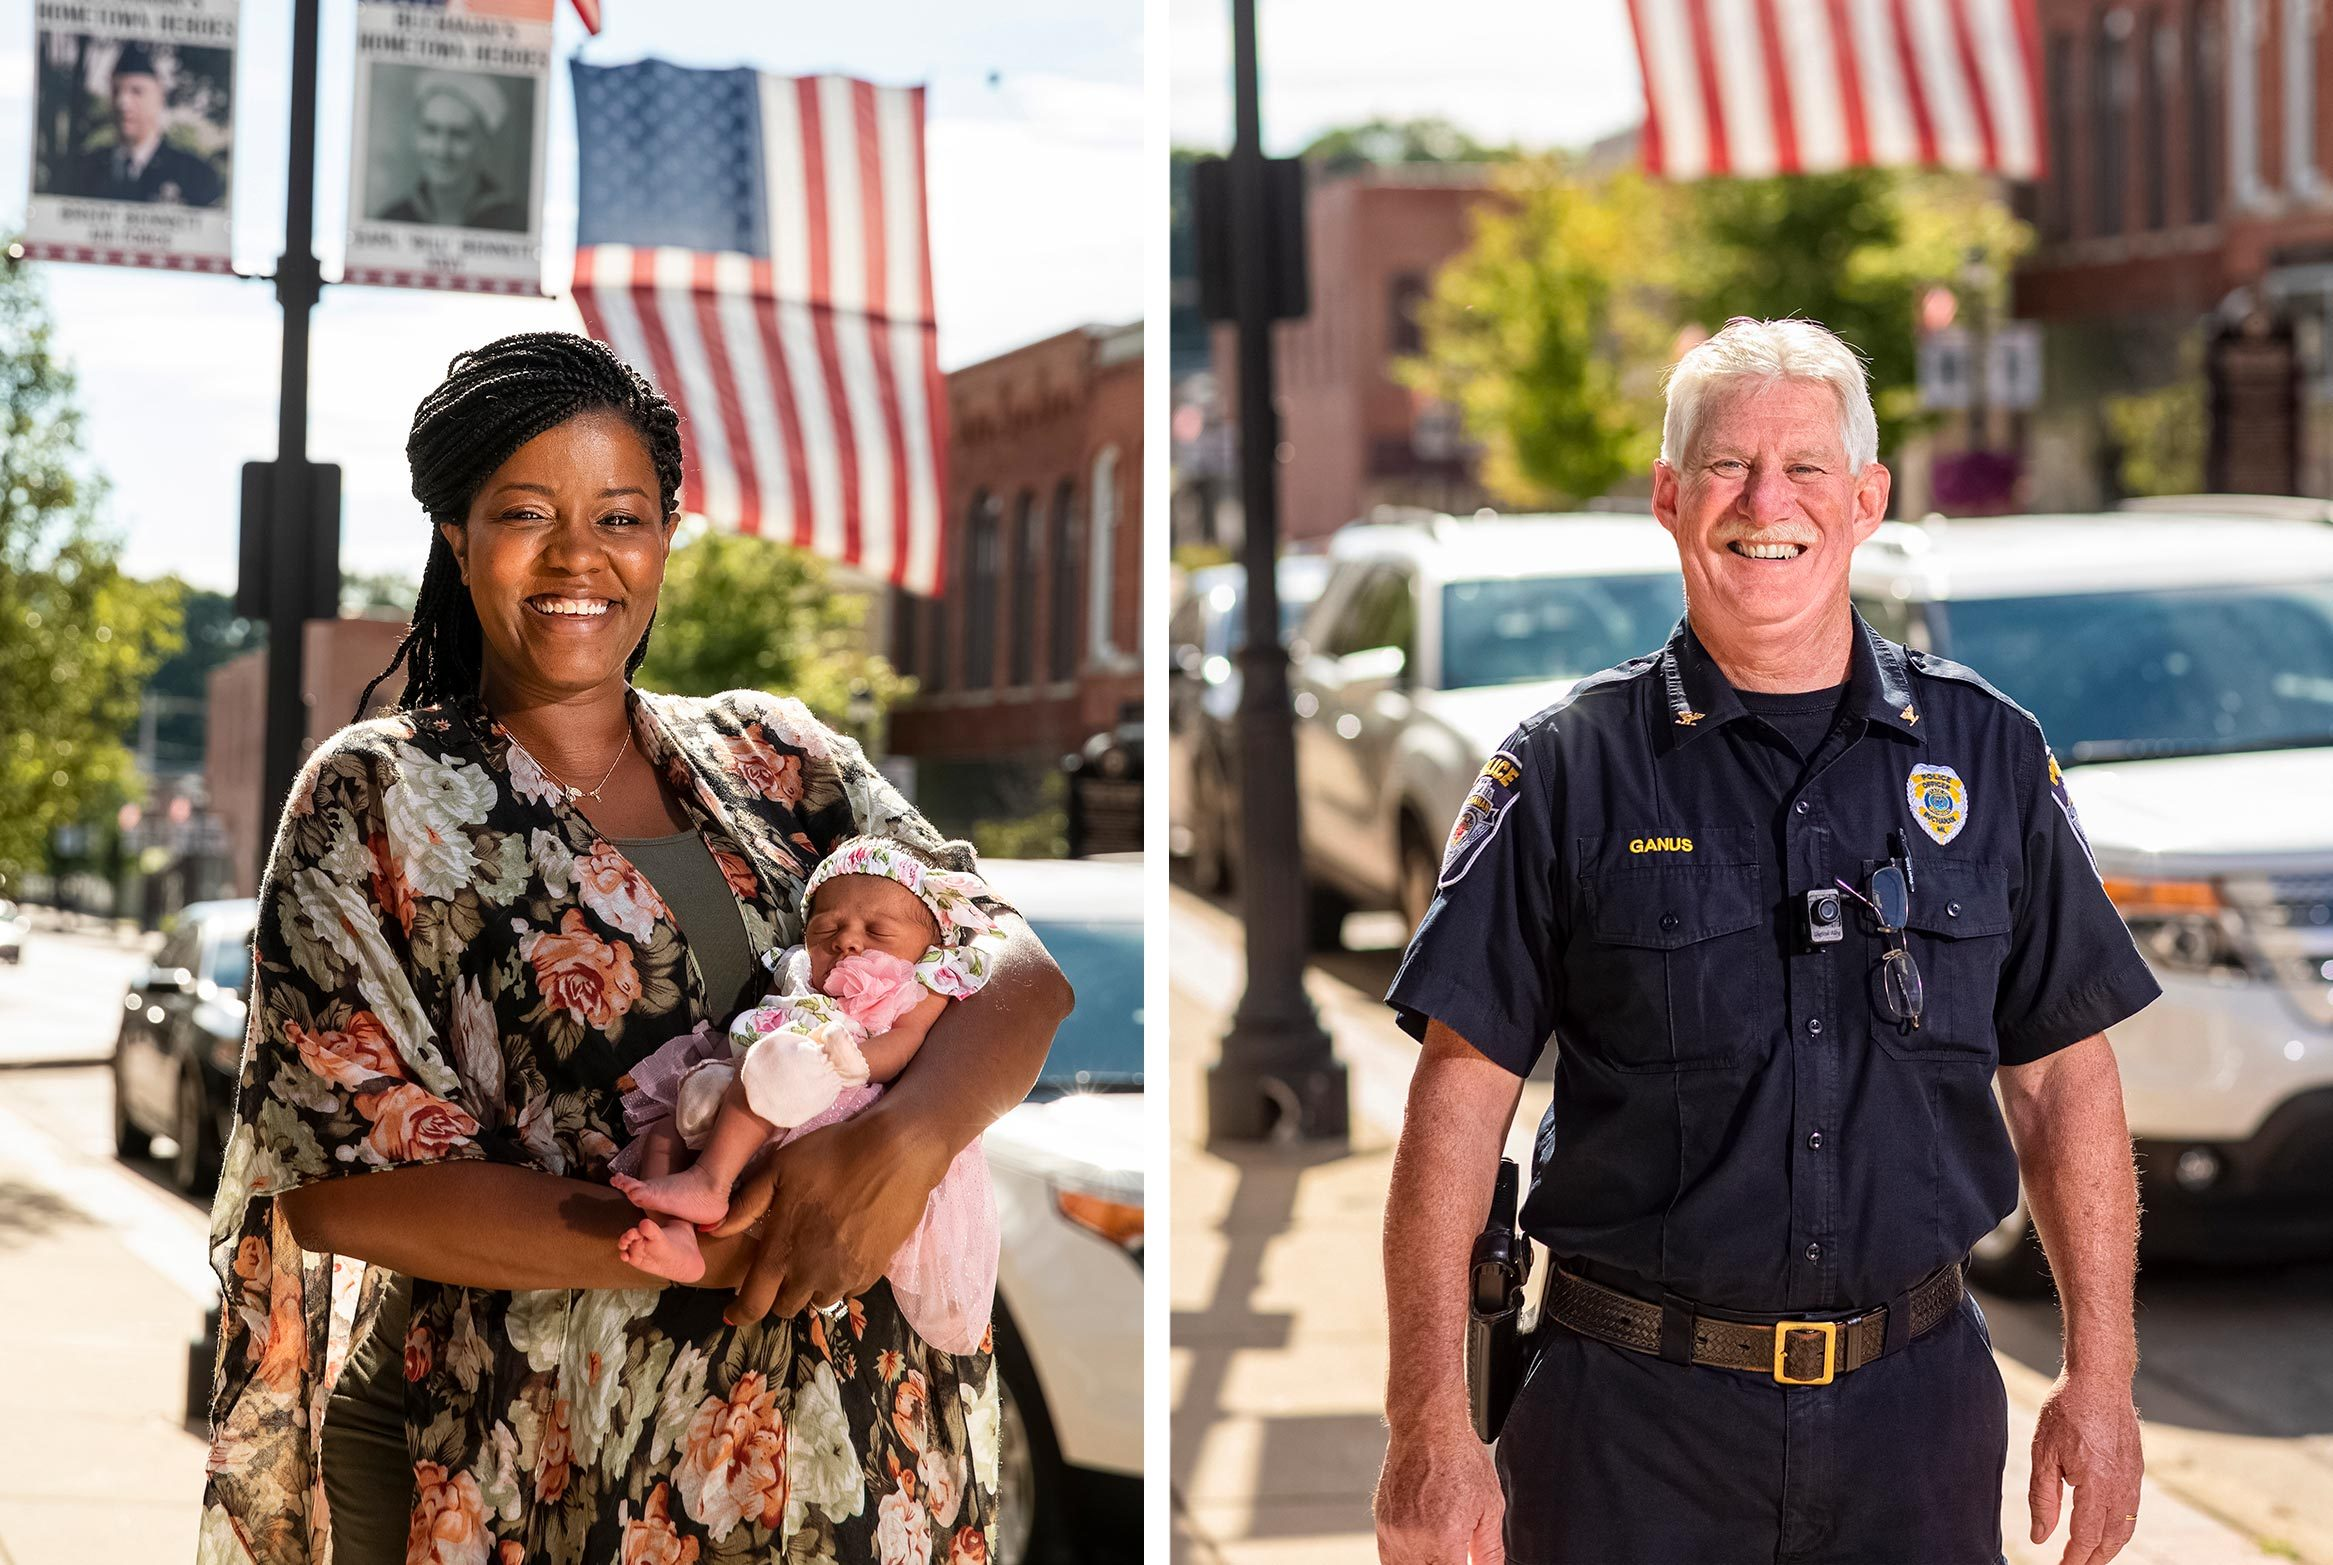 left: Deejra Lee and her baby, Dayna Rae; right: police chief Tim Ganus